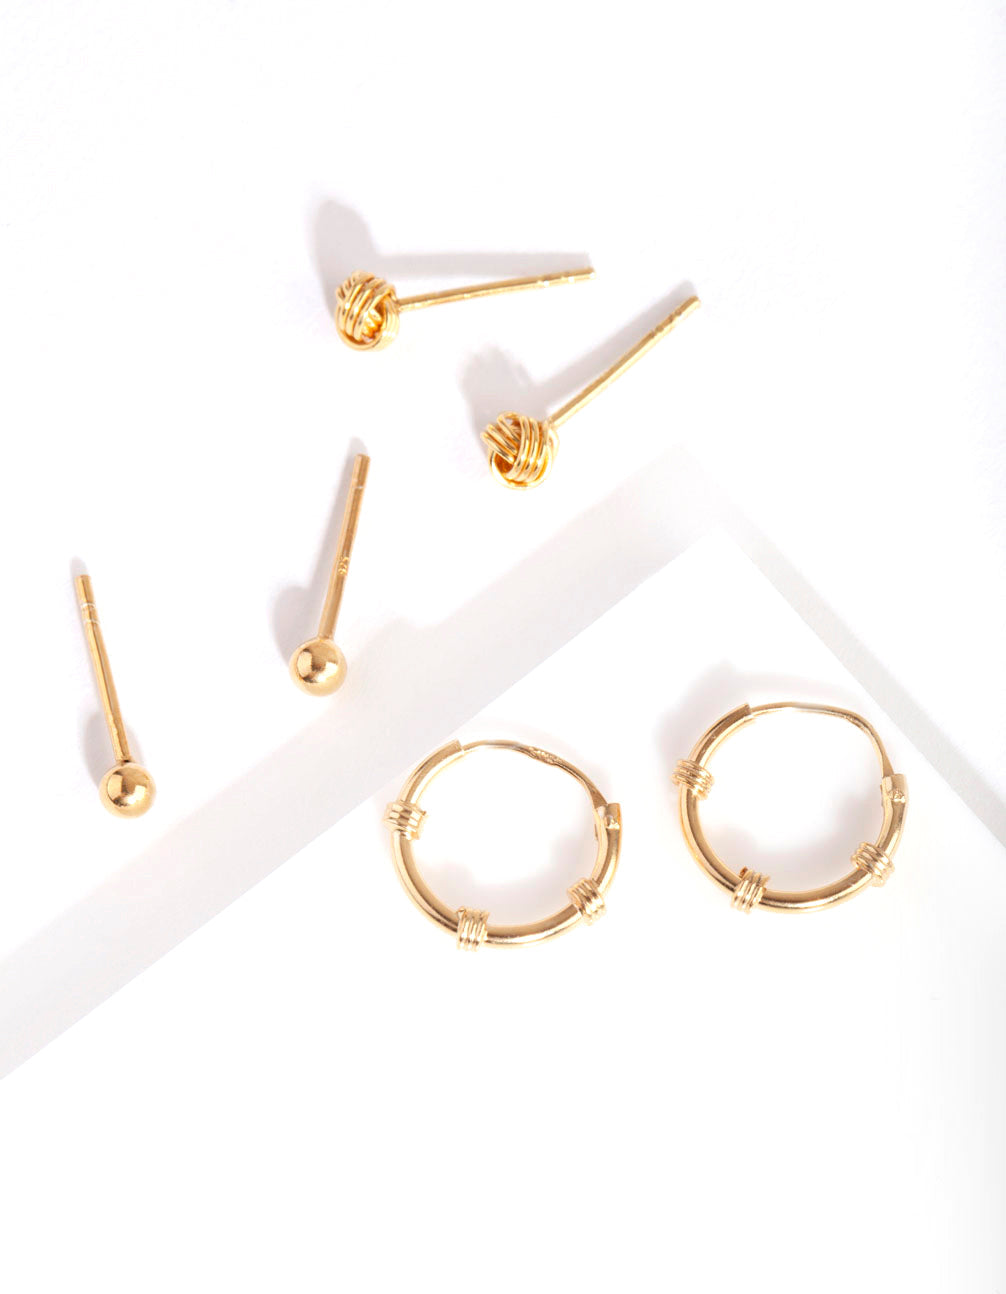 Gold Plated Sterling Silver Knot Hoop Earring 3 Pack